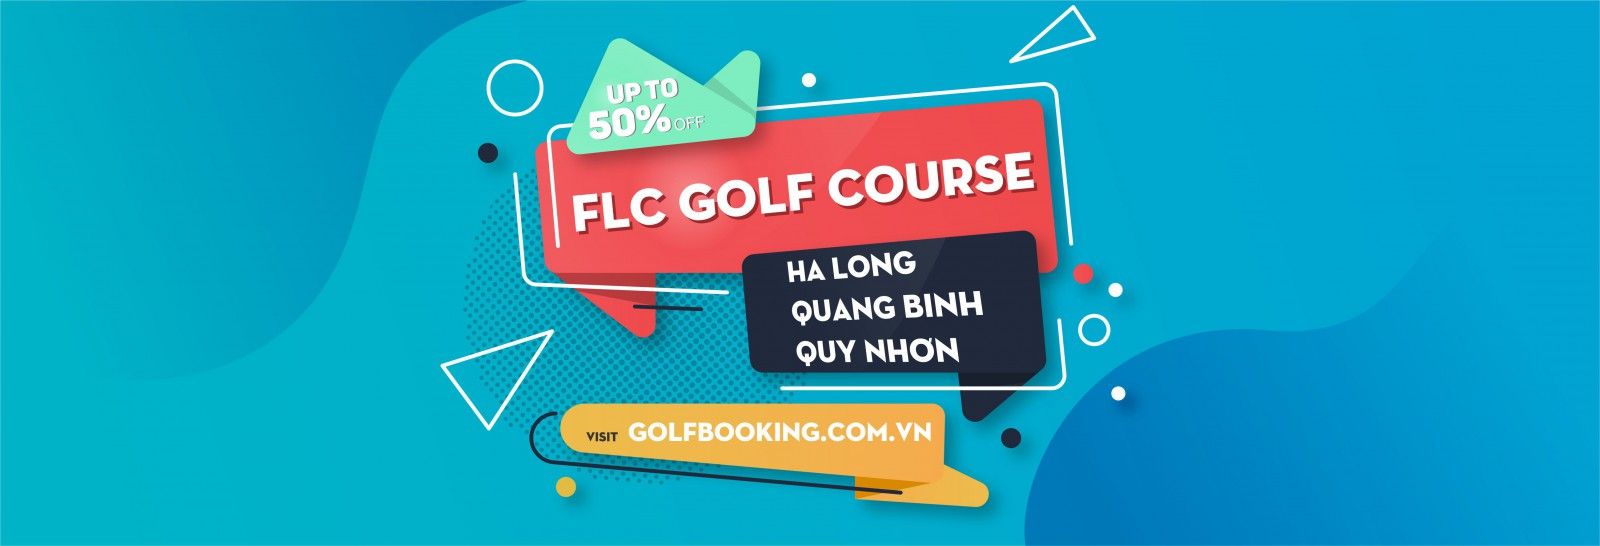 FLC GOLF COURSE PROMOTION